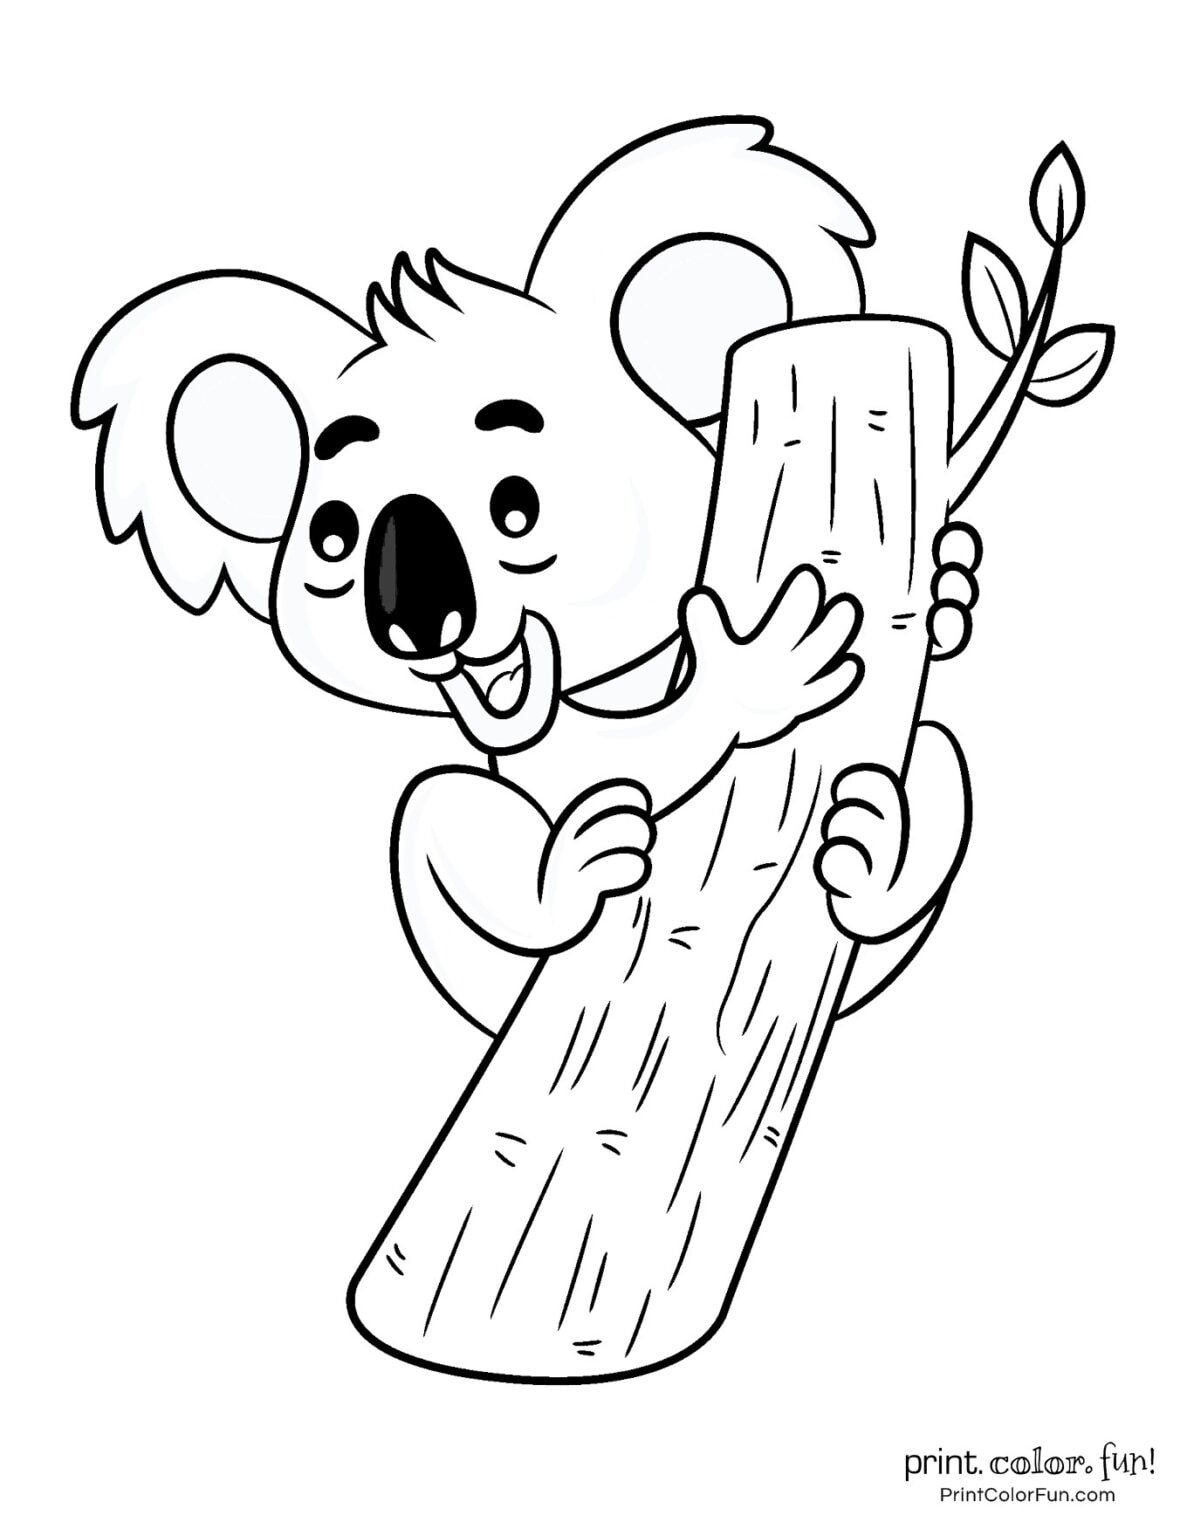 10 Free Cute Koala Coloring Pages Coloring Page Print Color Fun In 2020 Abc Coloring Pages Cute Coloring Pages Coloring Pages